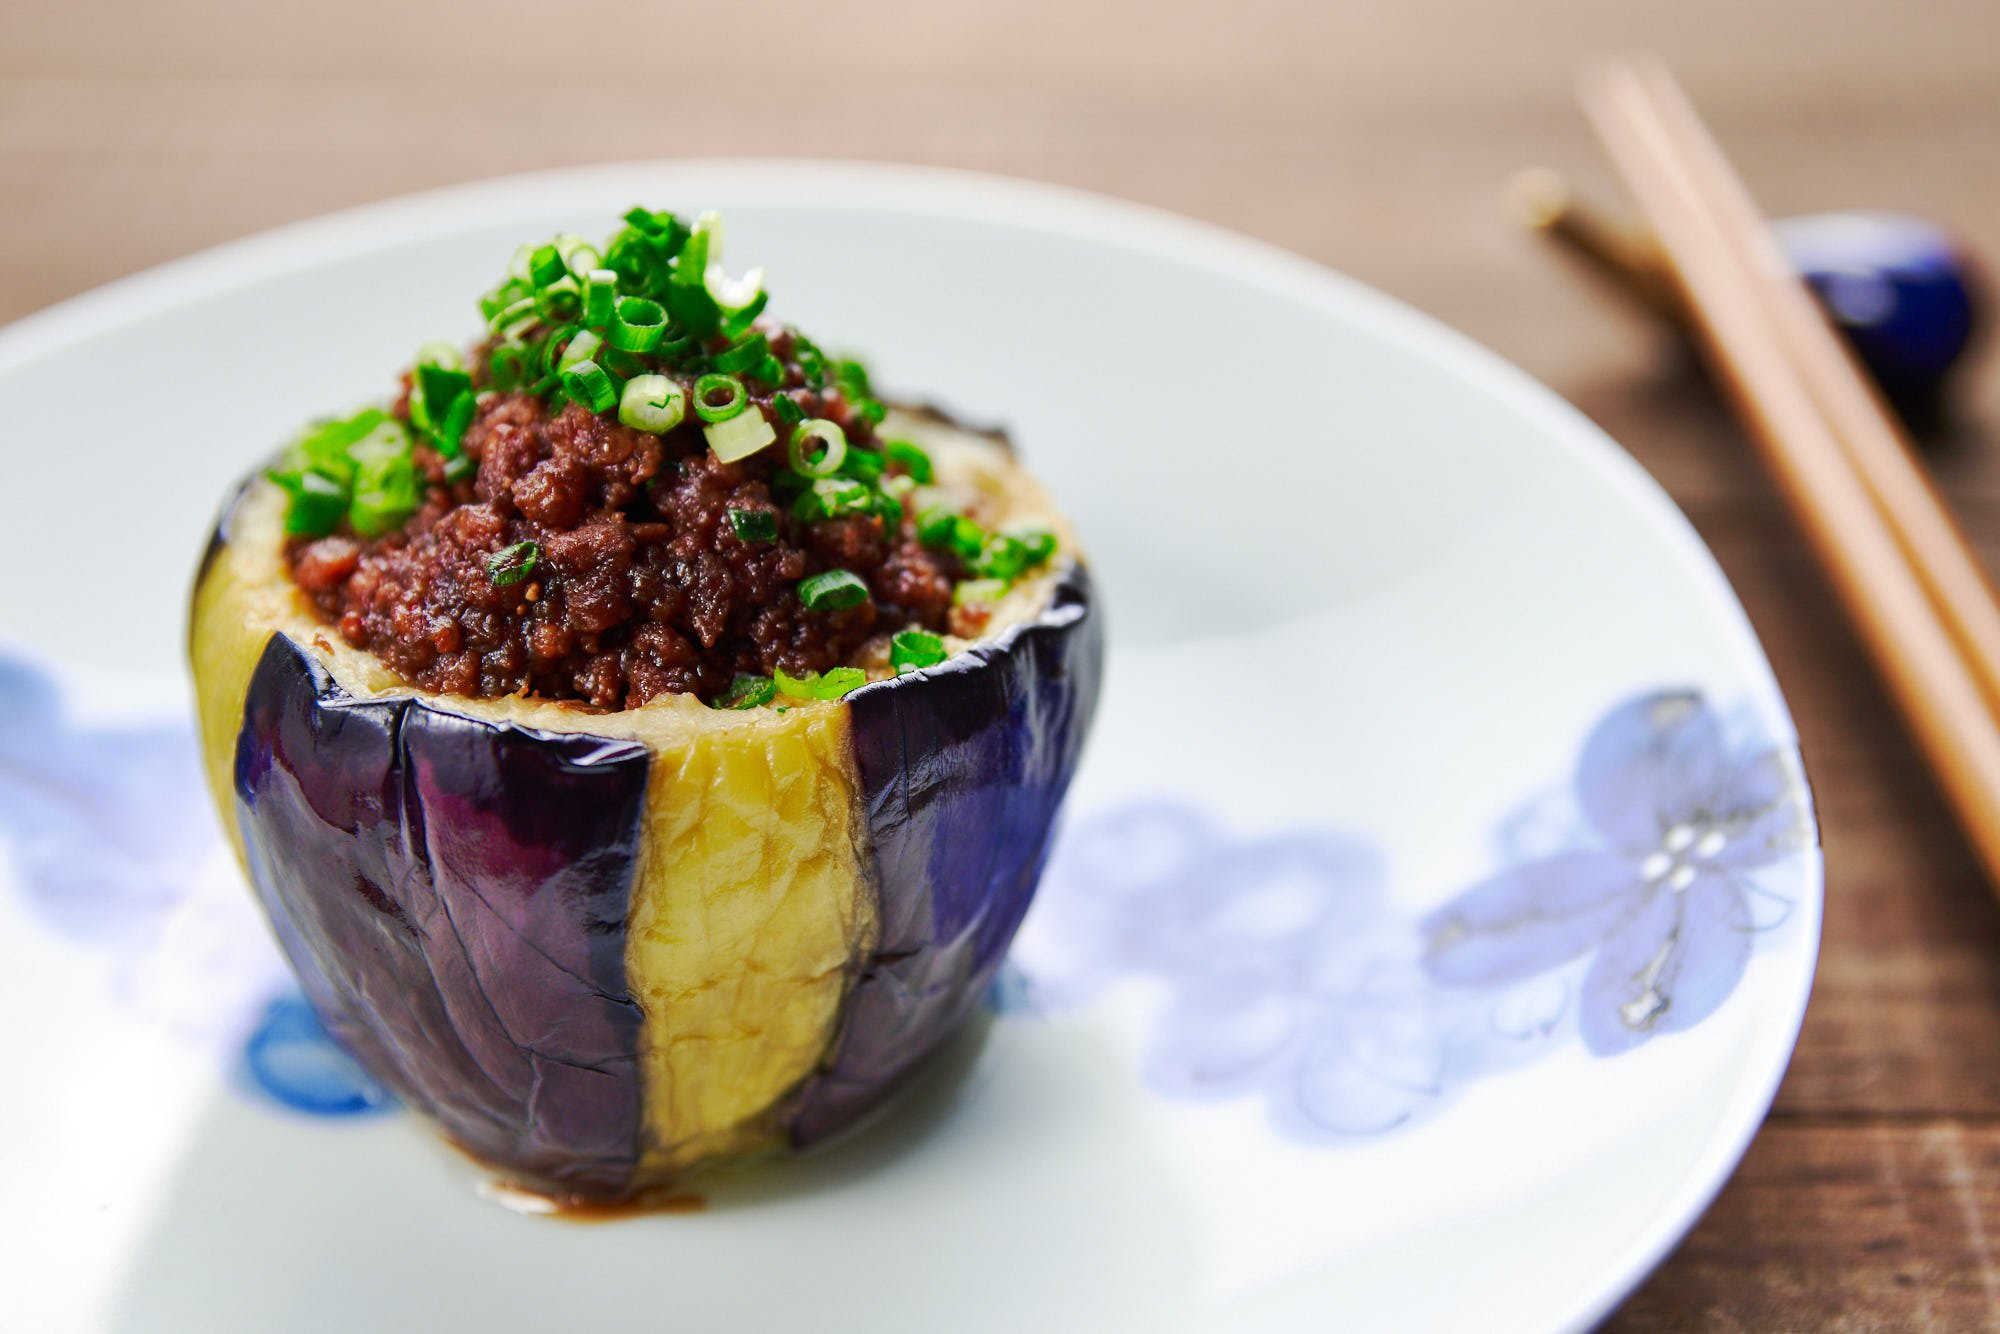 Caramelized miso and meat get stuff into a tender, creamy eggplant cup to make this Japanese Nasu Dengaku.